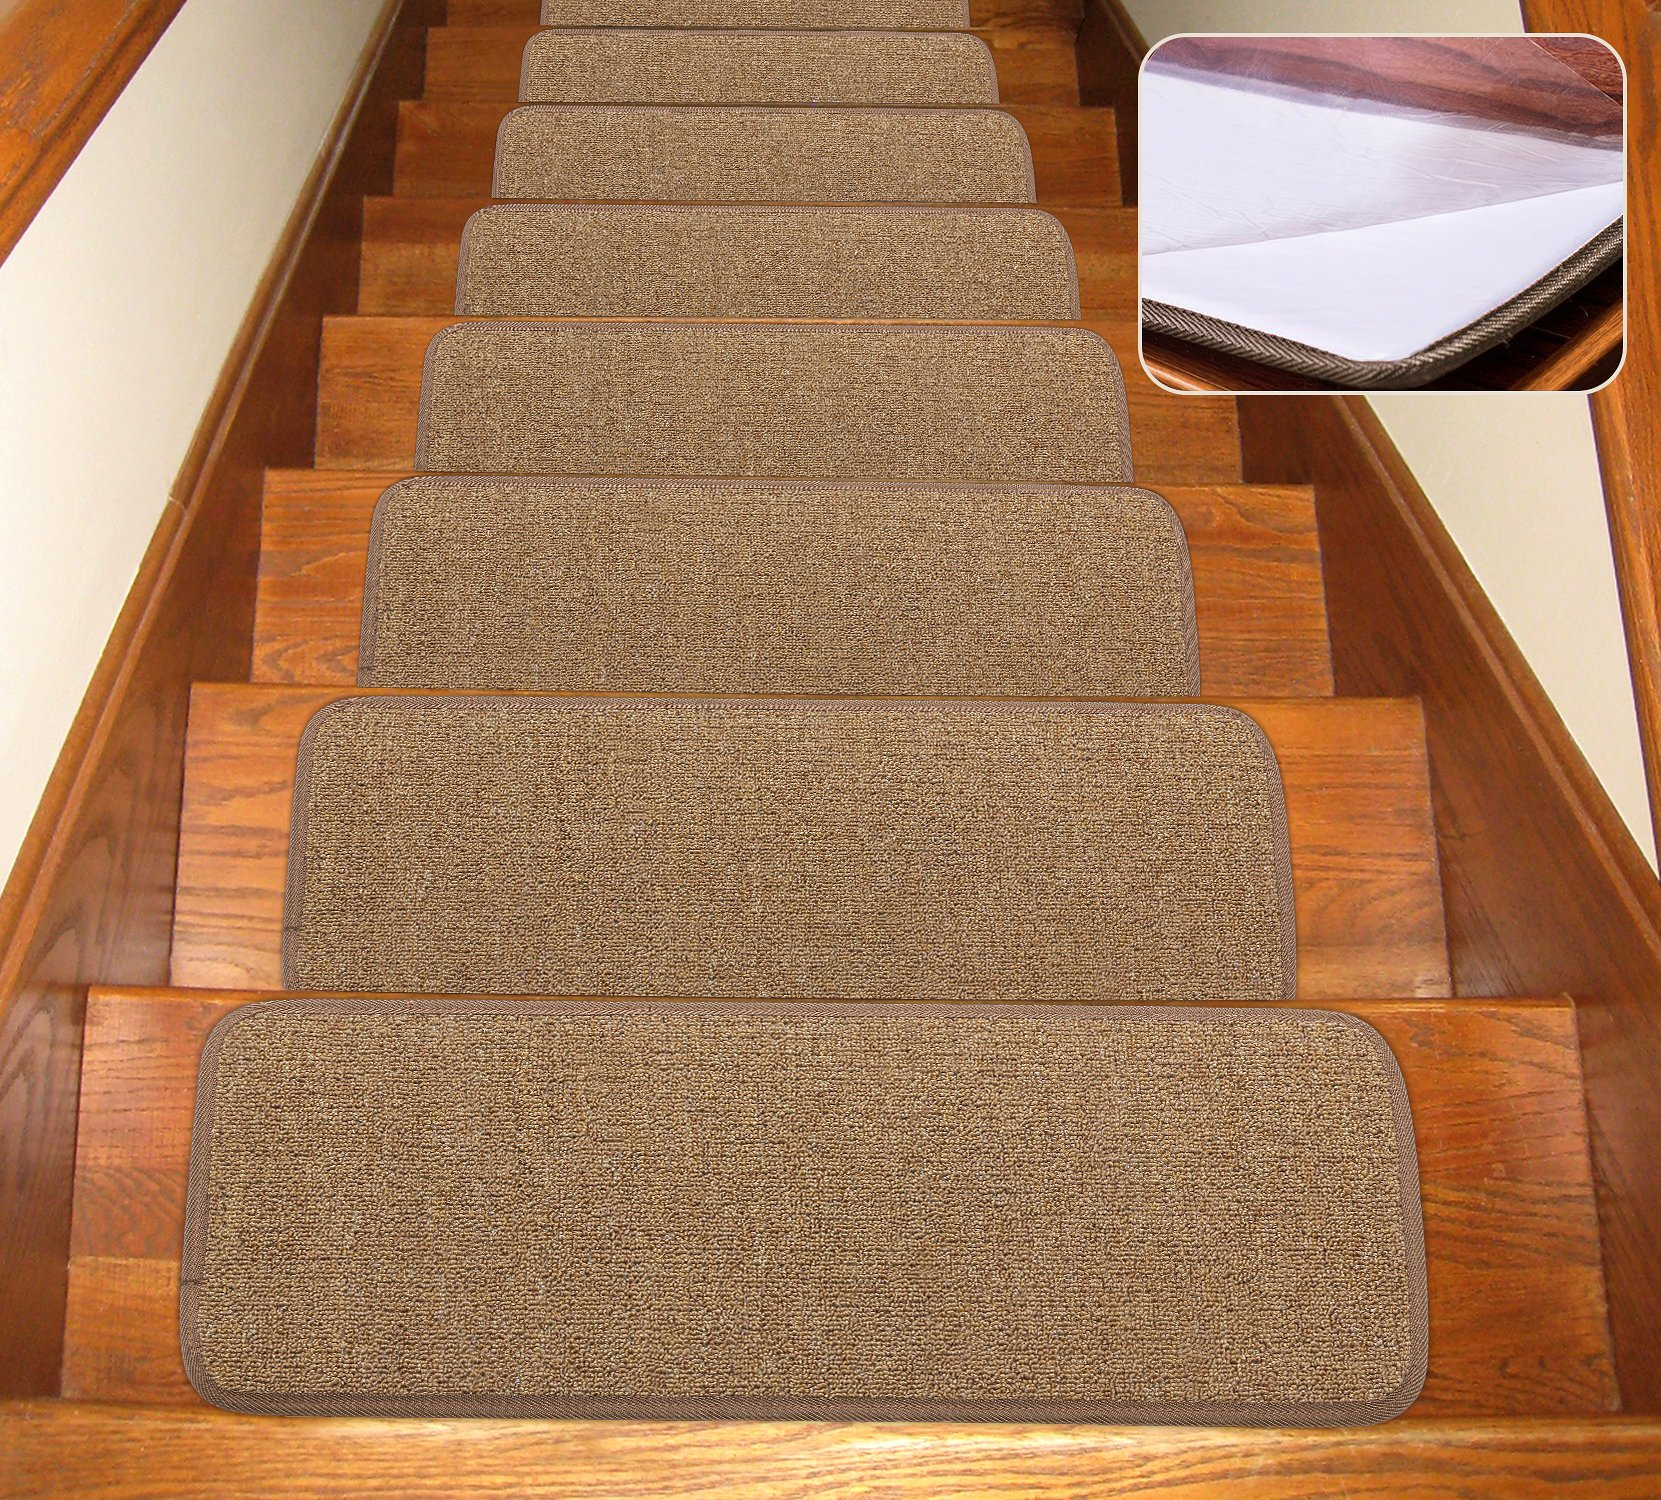 Seloom Stair Treads Carpet Non-Slip with Skid Resistant Rubber Backing Specialized for Indoor Wood Steps, Removable Washable Step Floor Rugs for Stairs (Pure Brown, Set of 13) by Seloom